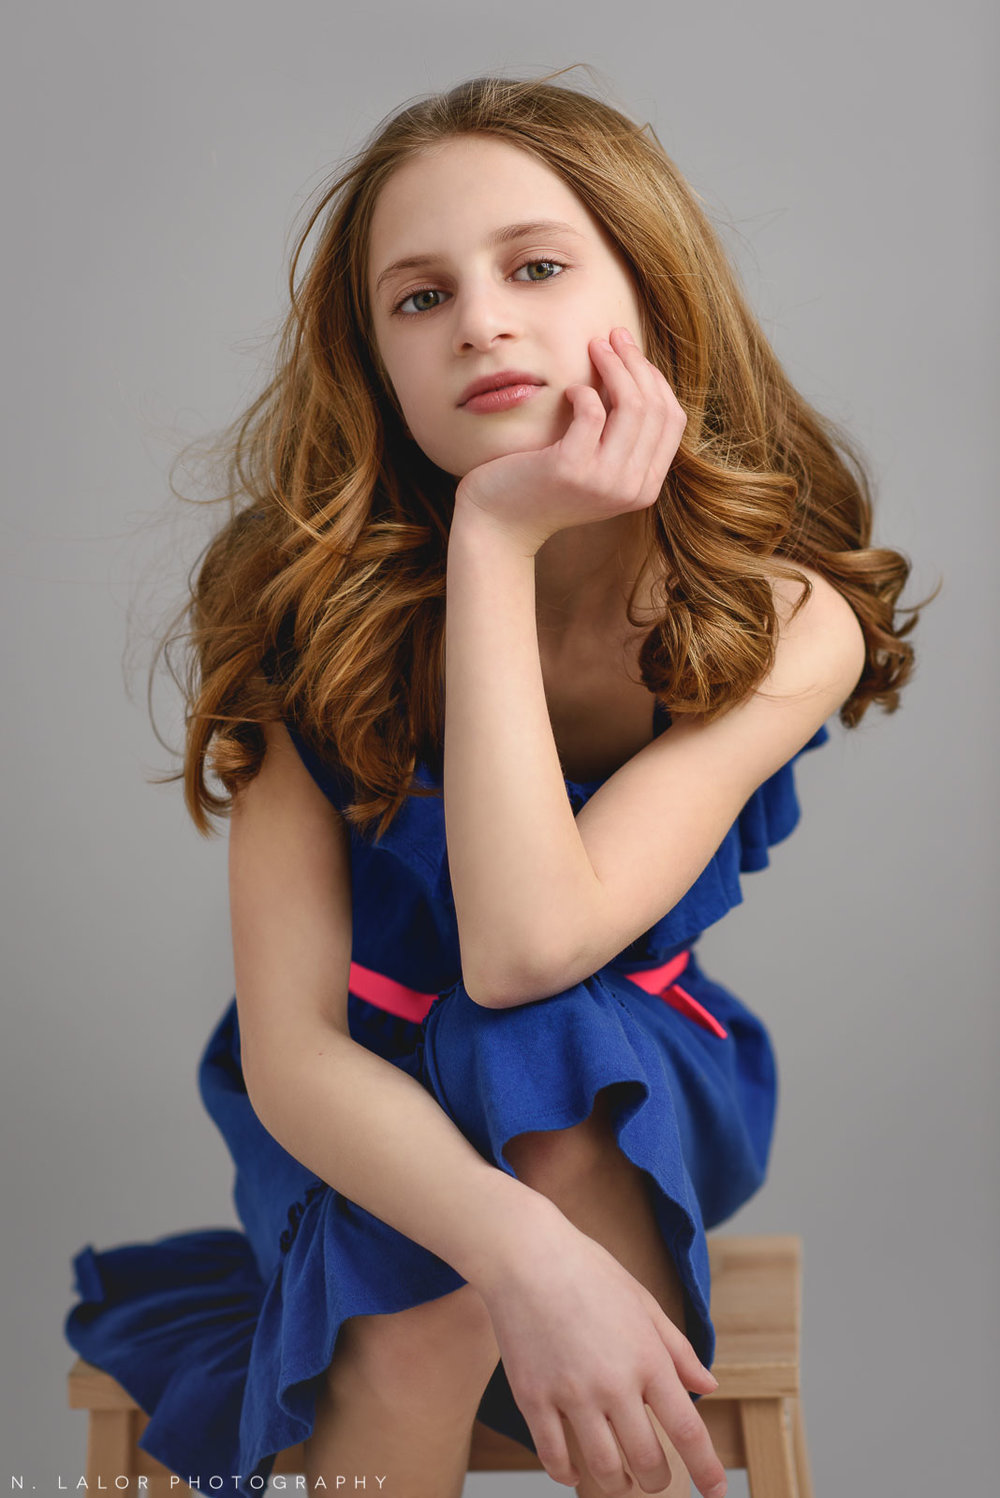 The look. Tween Studio photoshoot by N. Lalor Photography, located in Greenwich, CT.